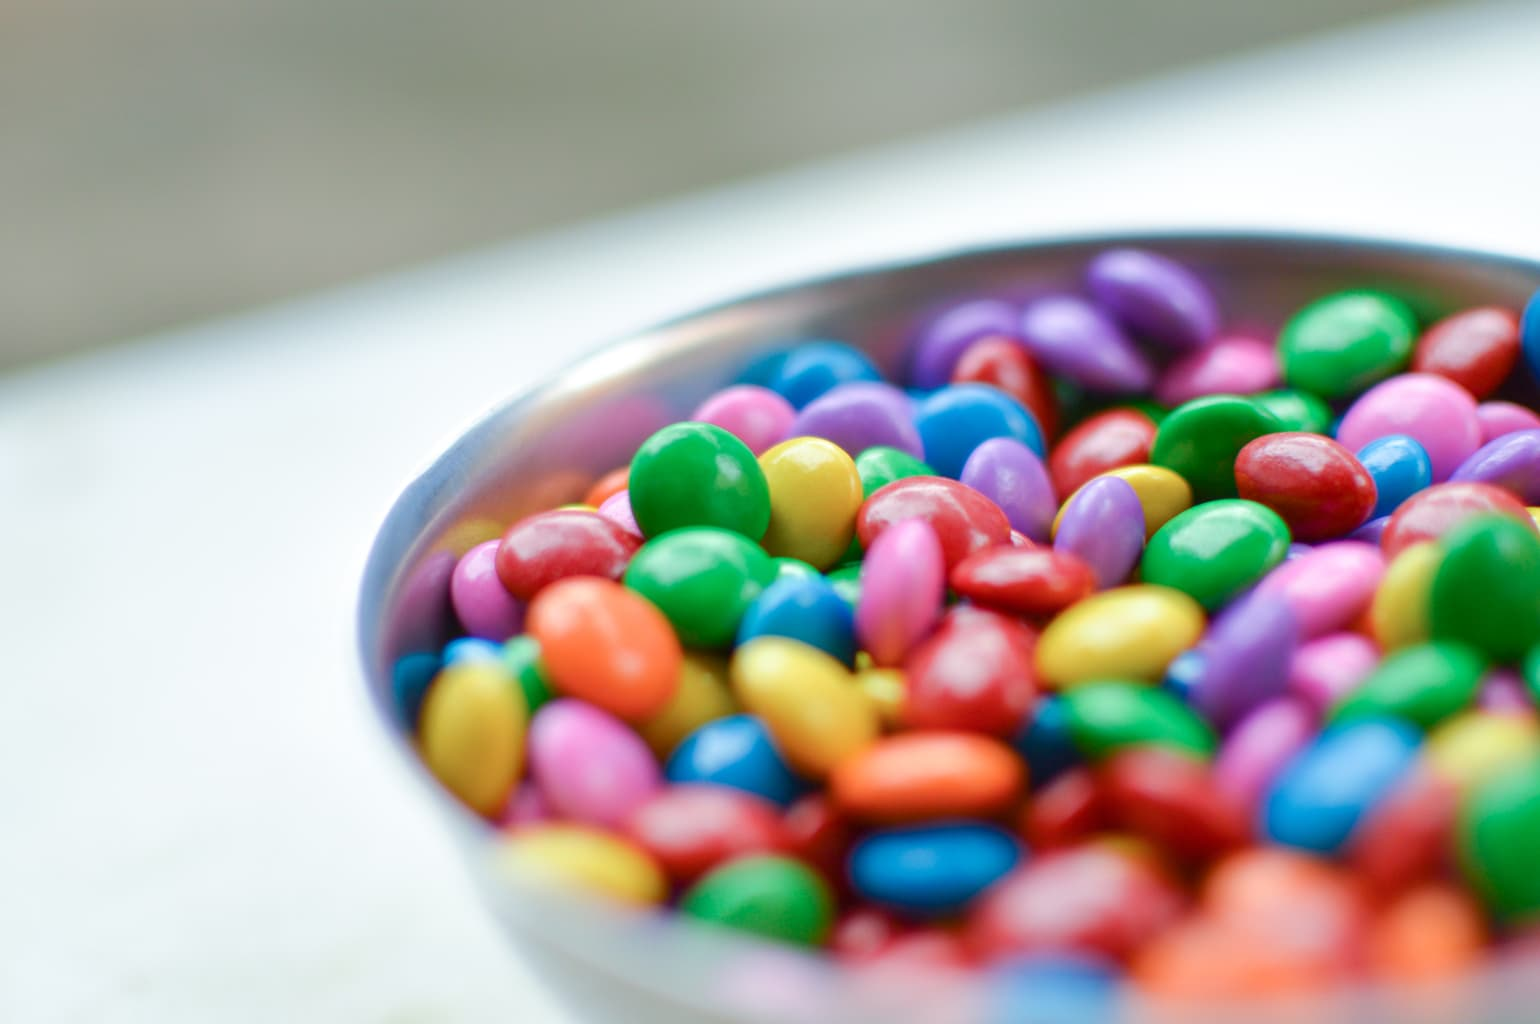 A bowl of colorful, round pieces of candy.